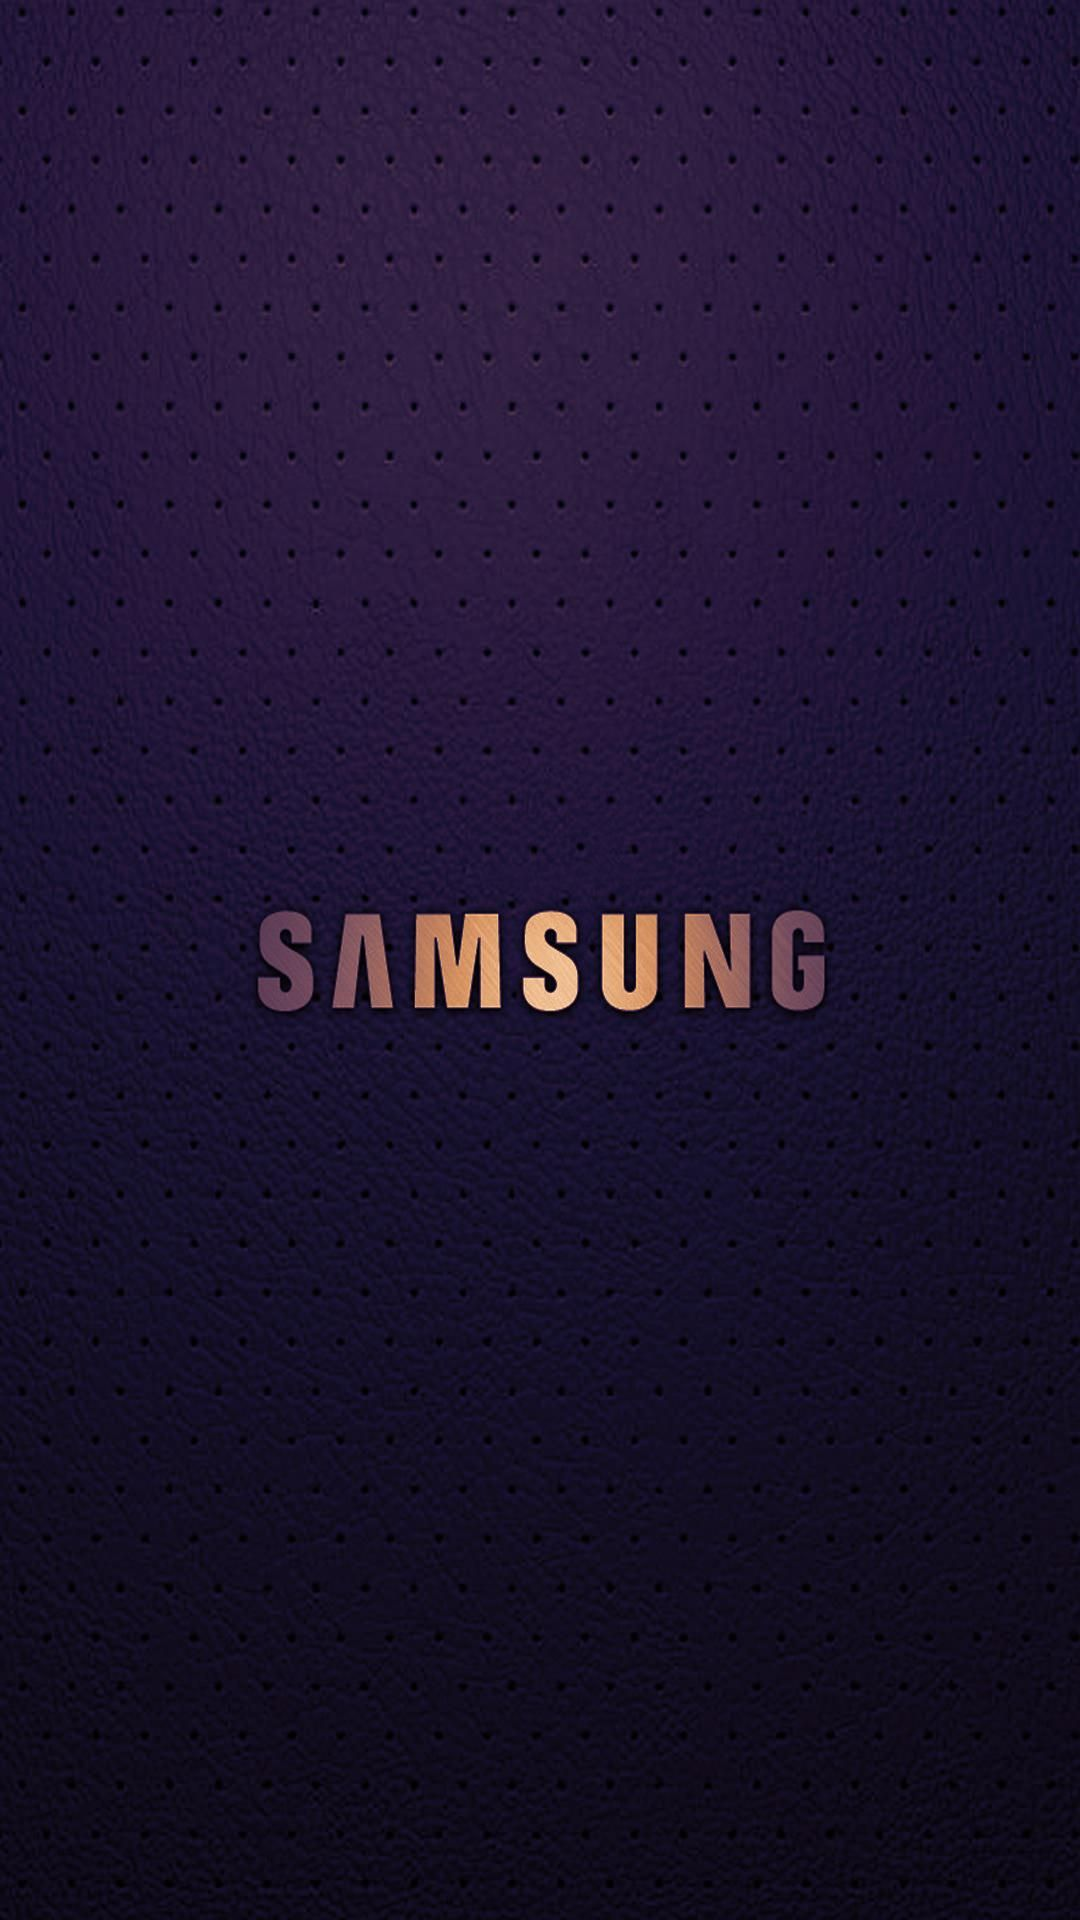 Samsung Logo Wallpapersc Smartphone Wallpaper In 2019 Samsung